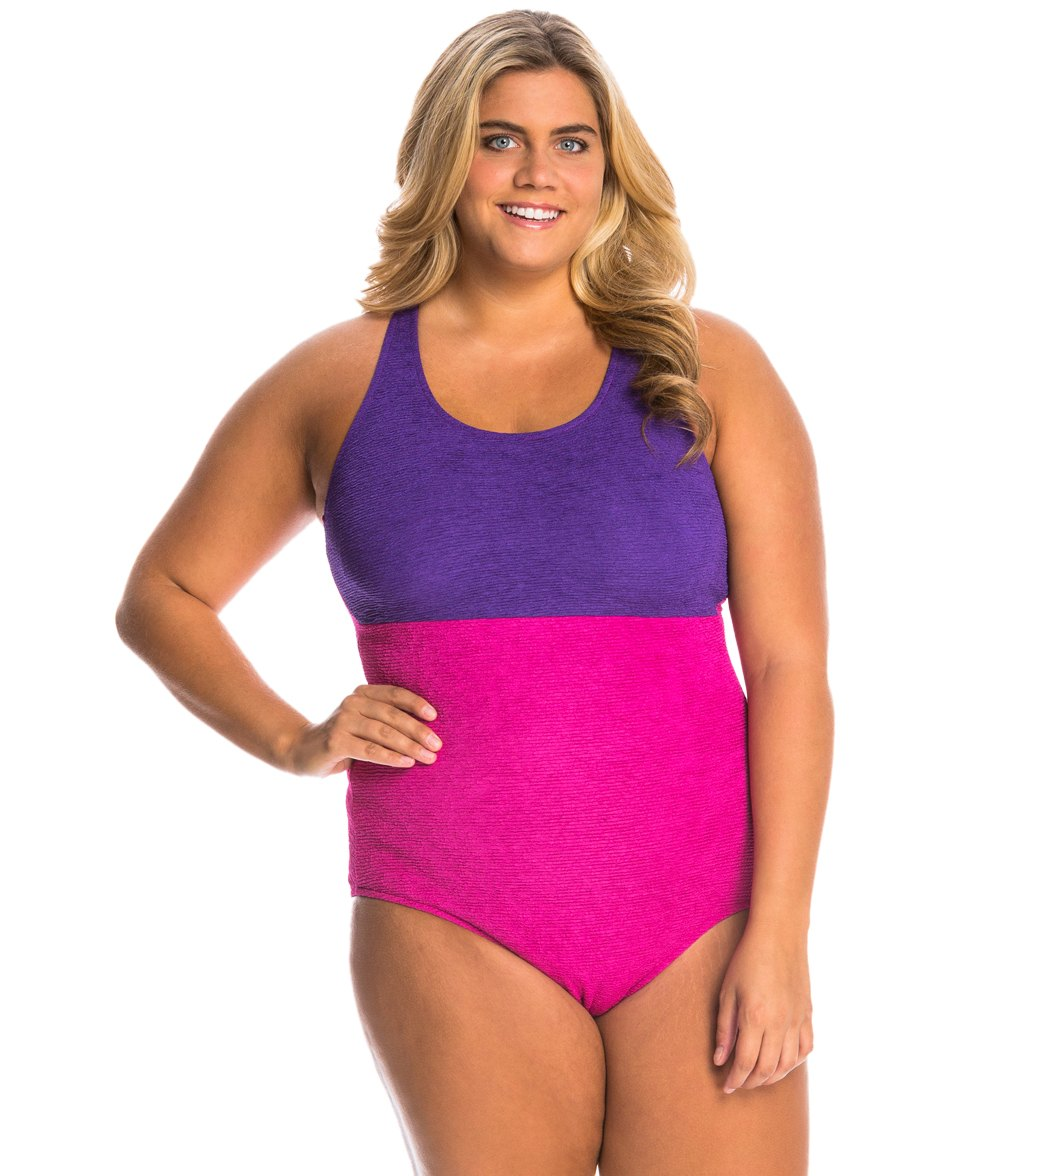 4f06e58d453 Sporti Plus Size Textured High Neck Colorblock One Piece Slimsuit at  SwimOutlet.com - Free Shipping